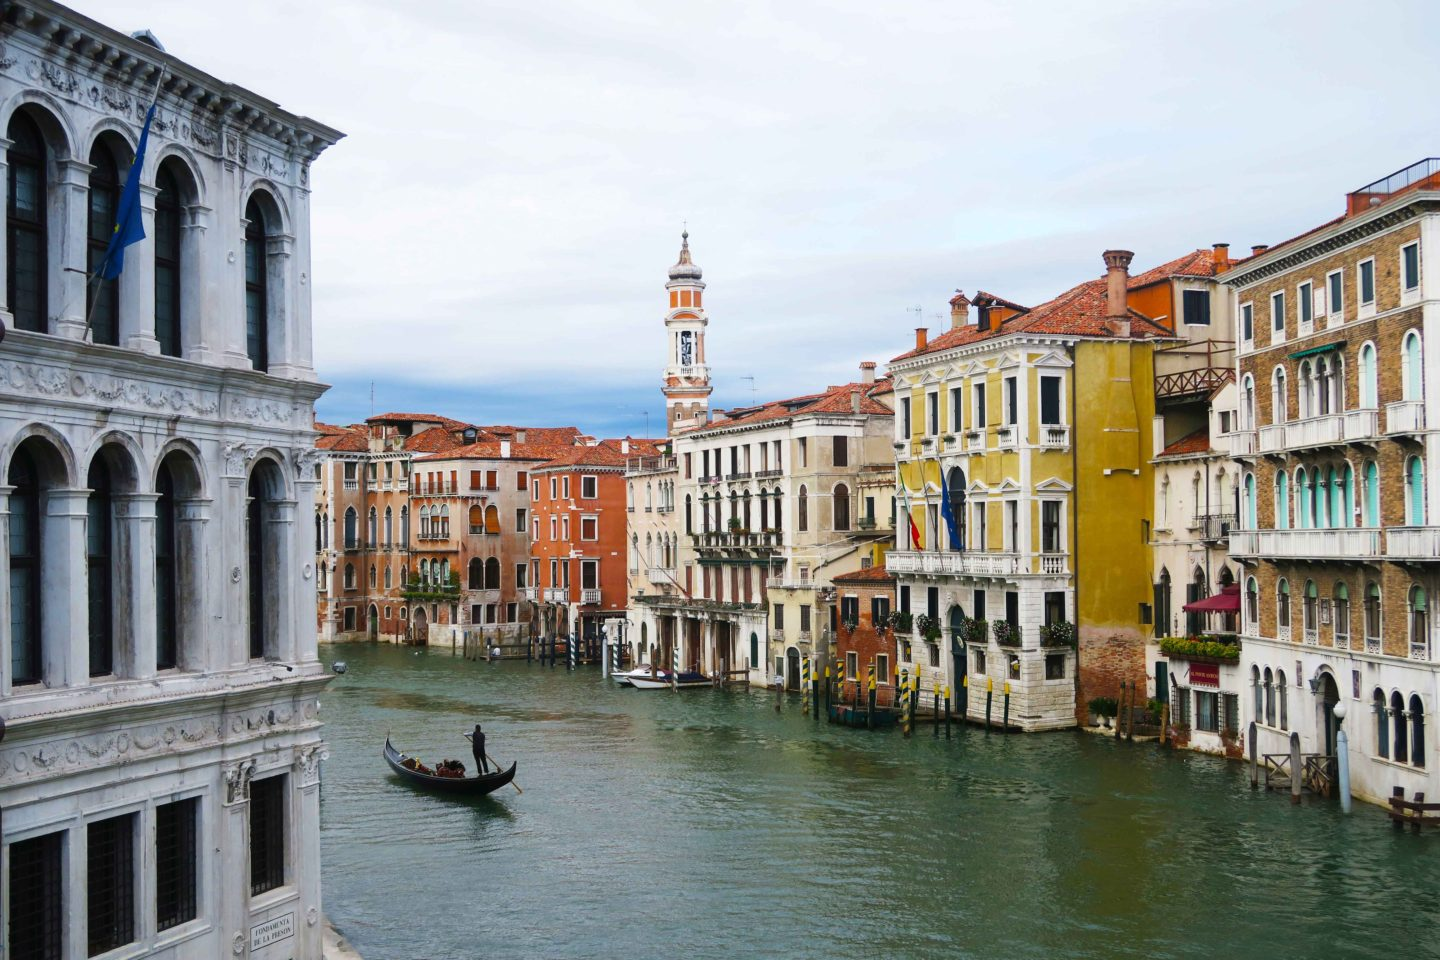 view from bridge in venice of a gondola in the canal